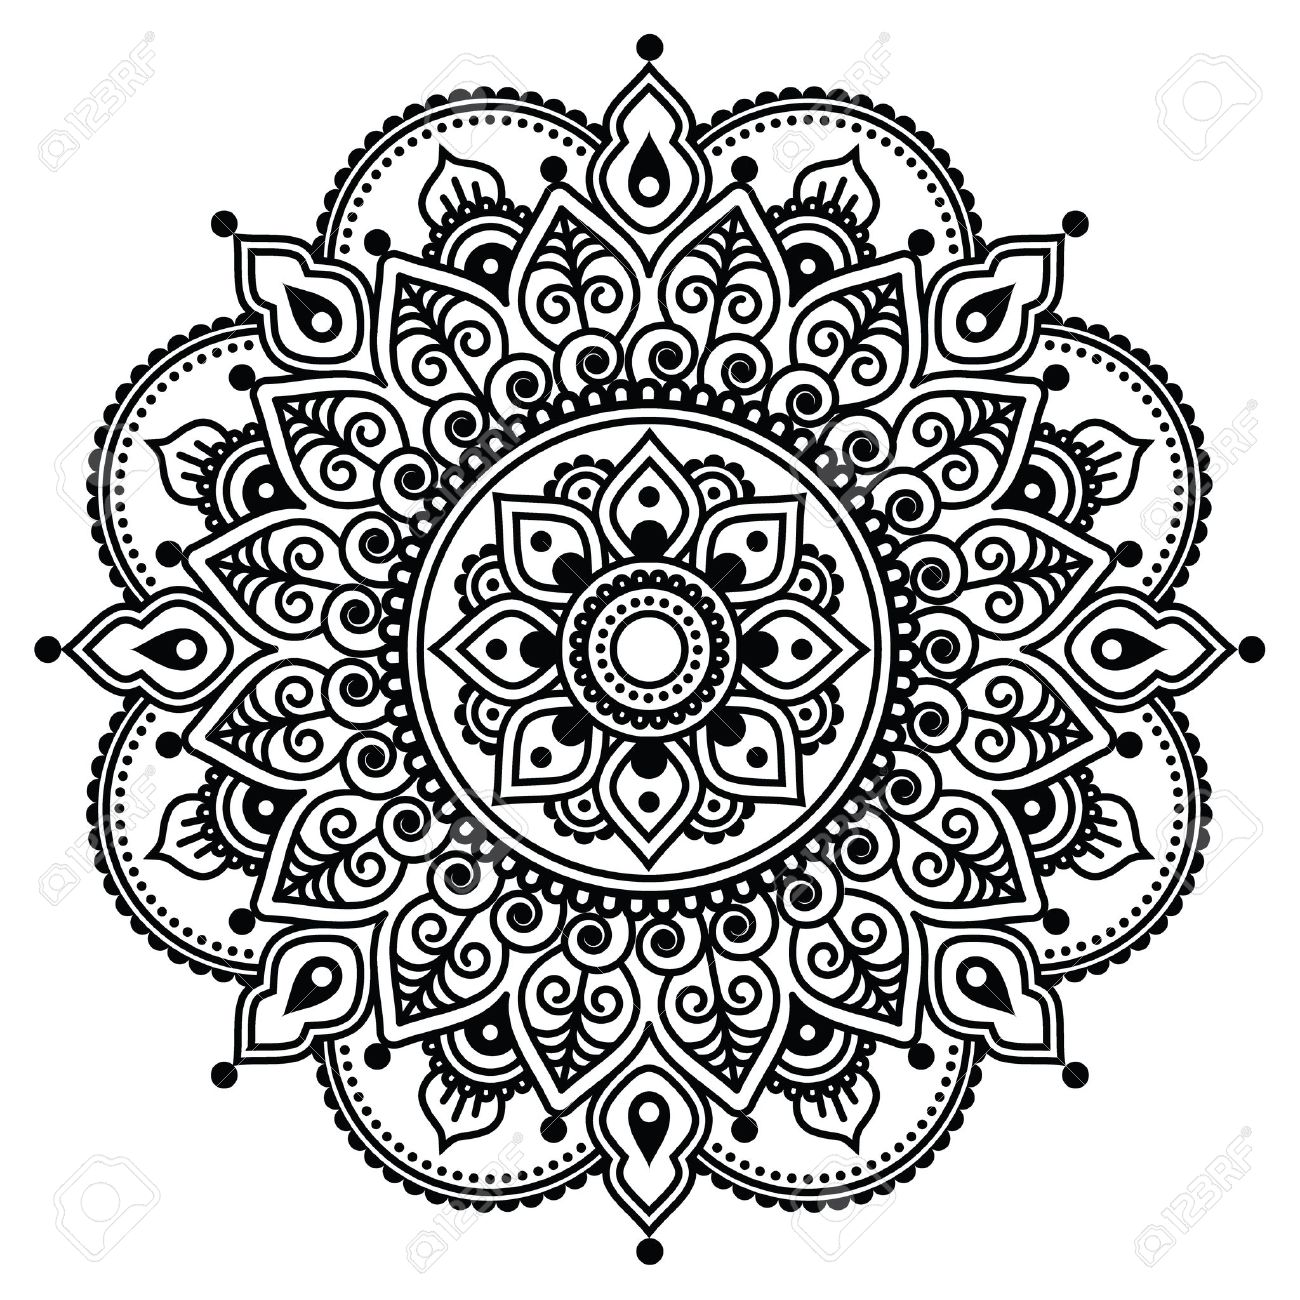 Mehndi Indian Henna Tattoo Pattern Or Background Royalty Free